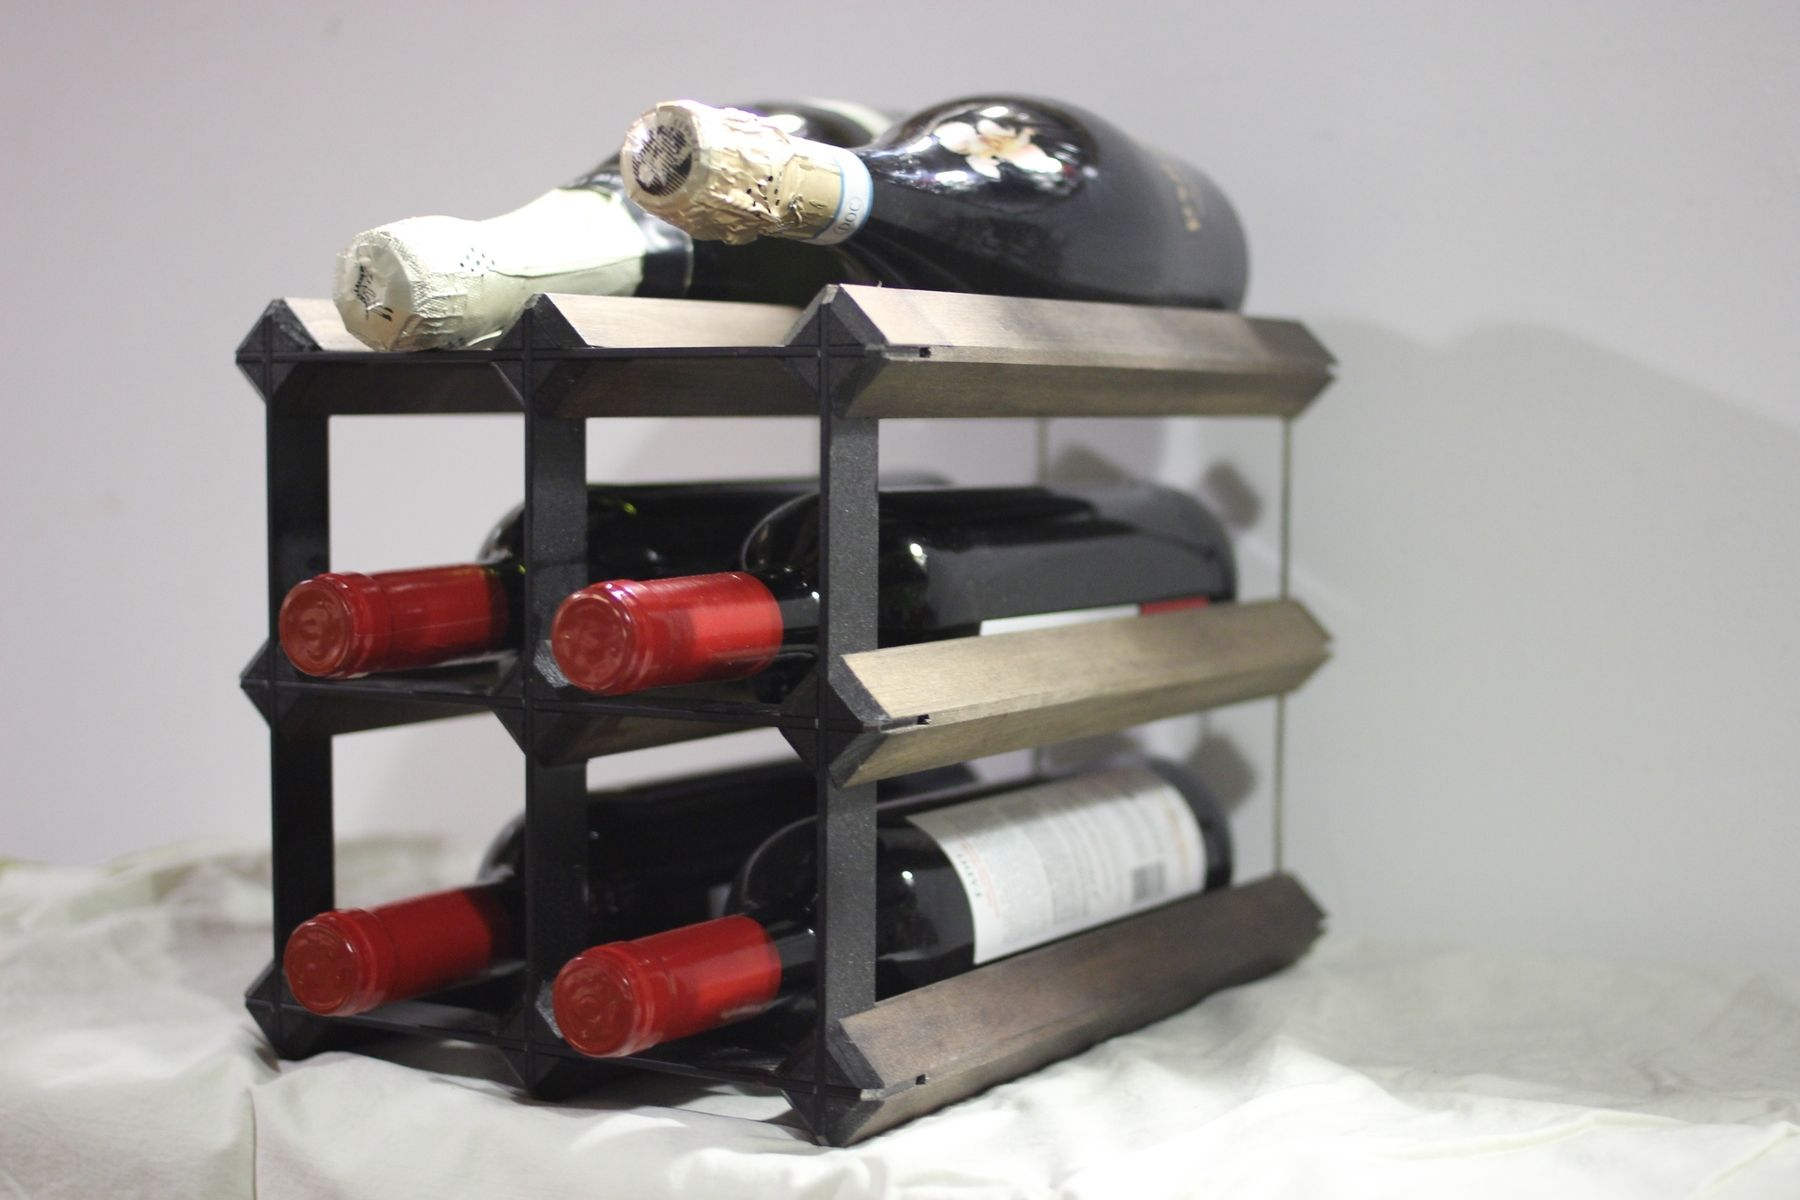 out shop racks hr pull and your countertop for rack bedroom storage wine countertops kitchen